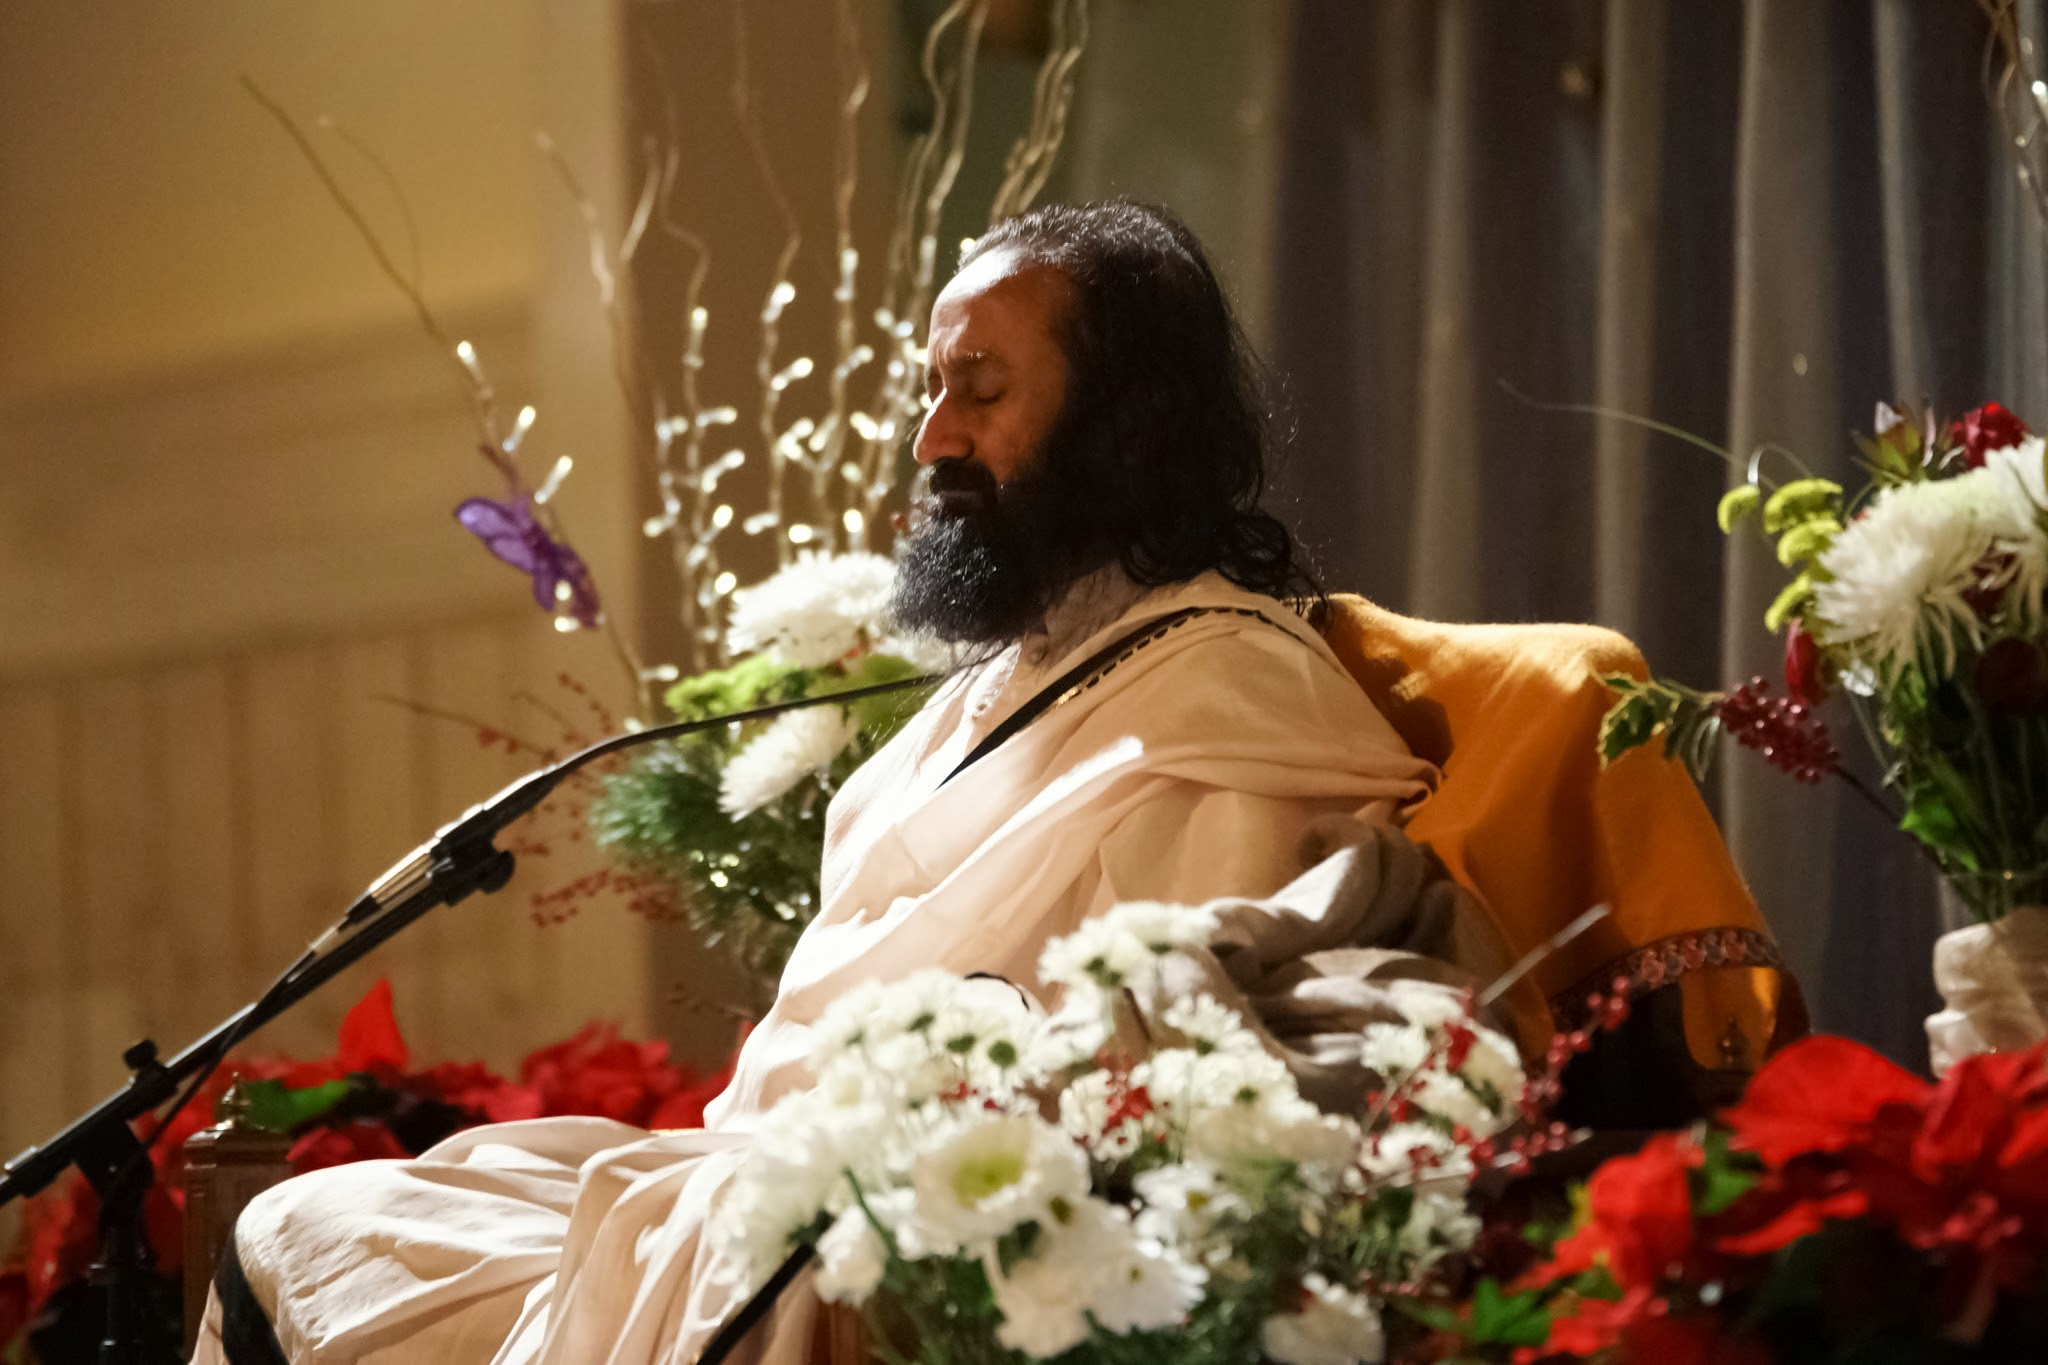 Sri Sri leads the Christmas meditation in Boone